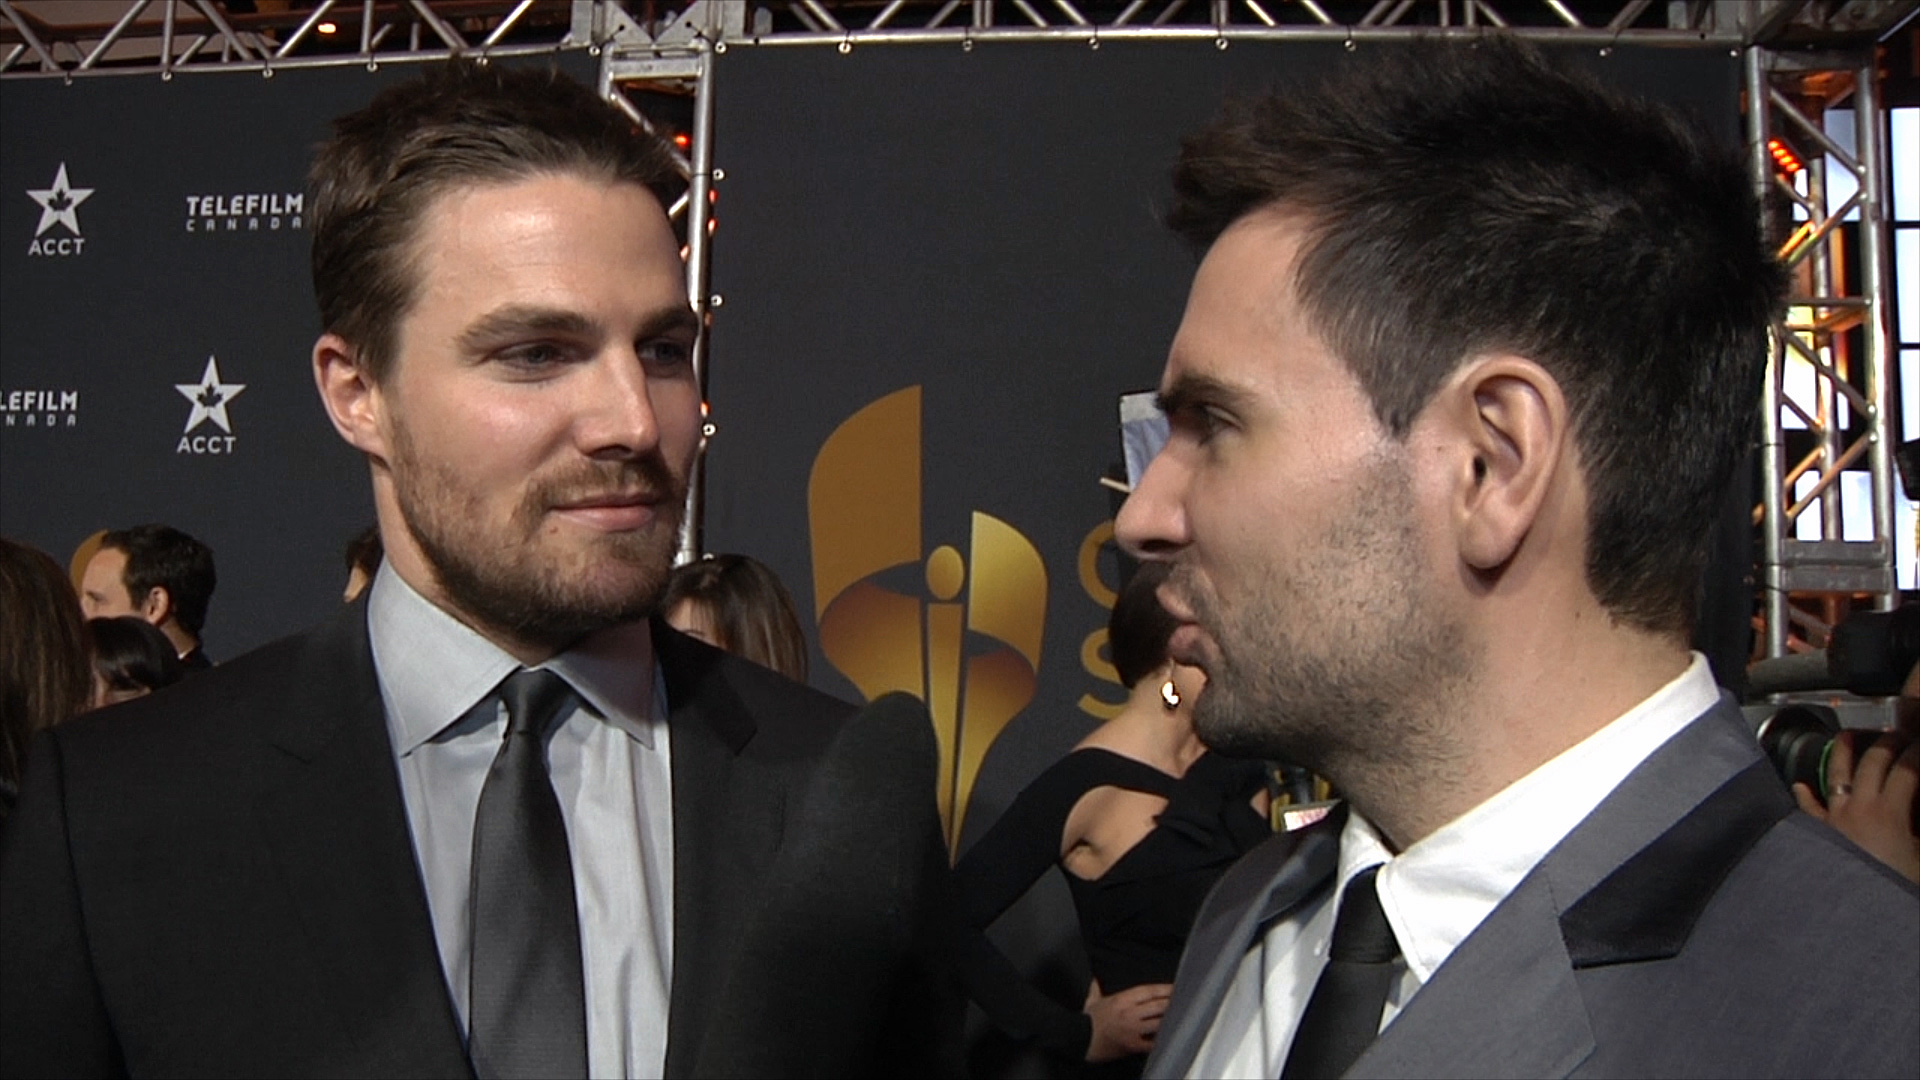 Stephen Amell with Mr. Hollywood